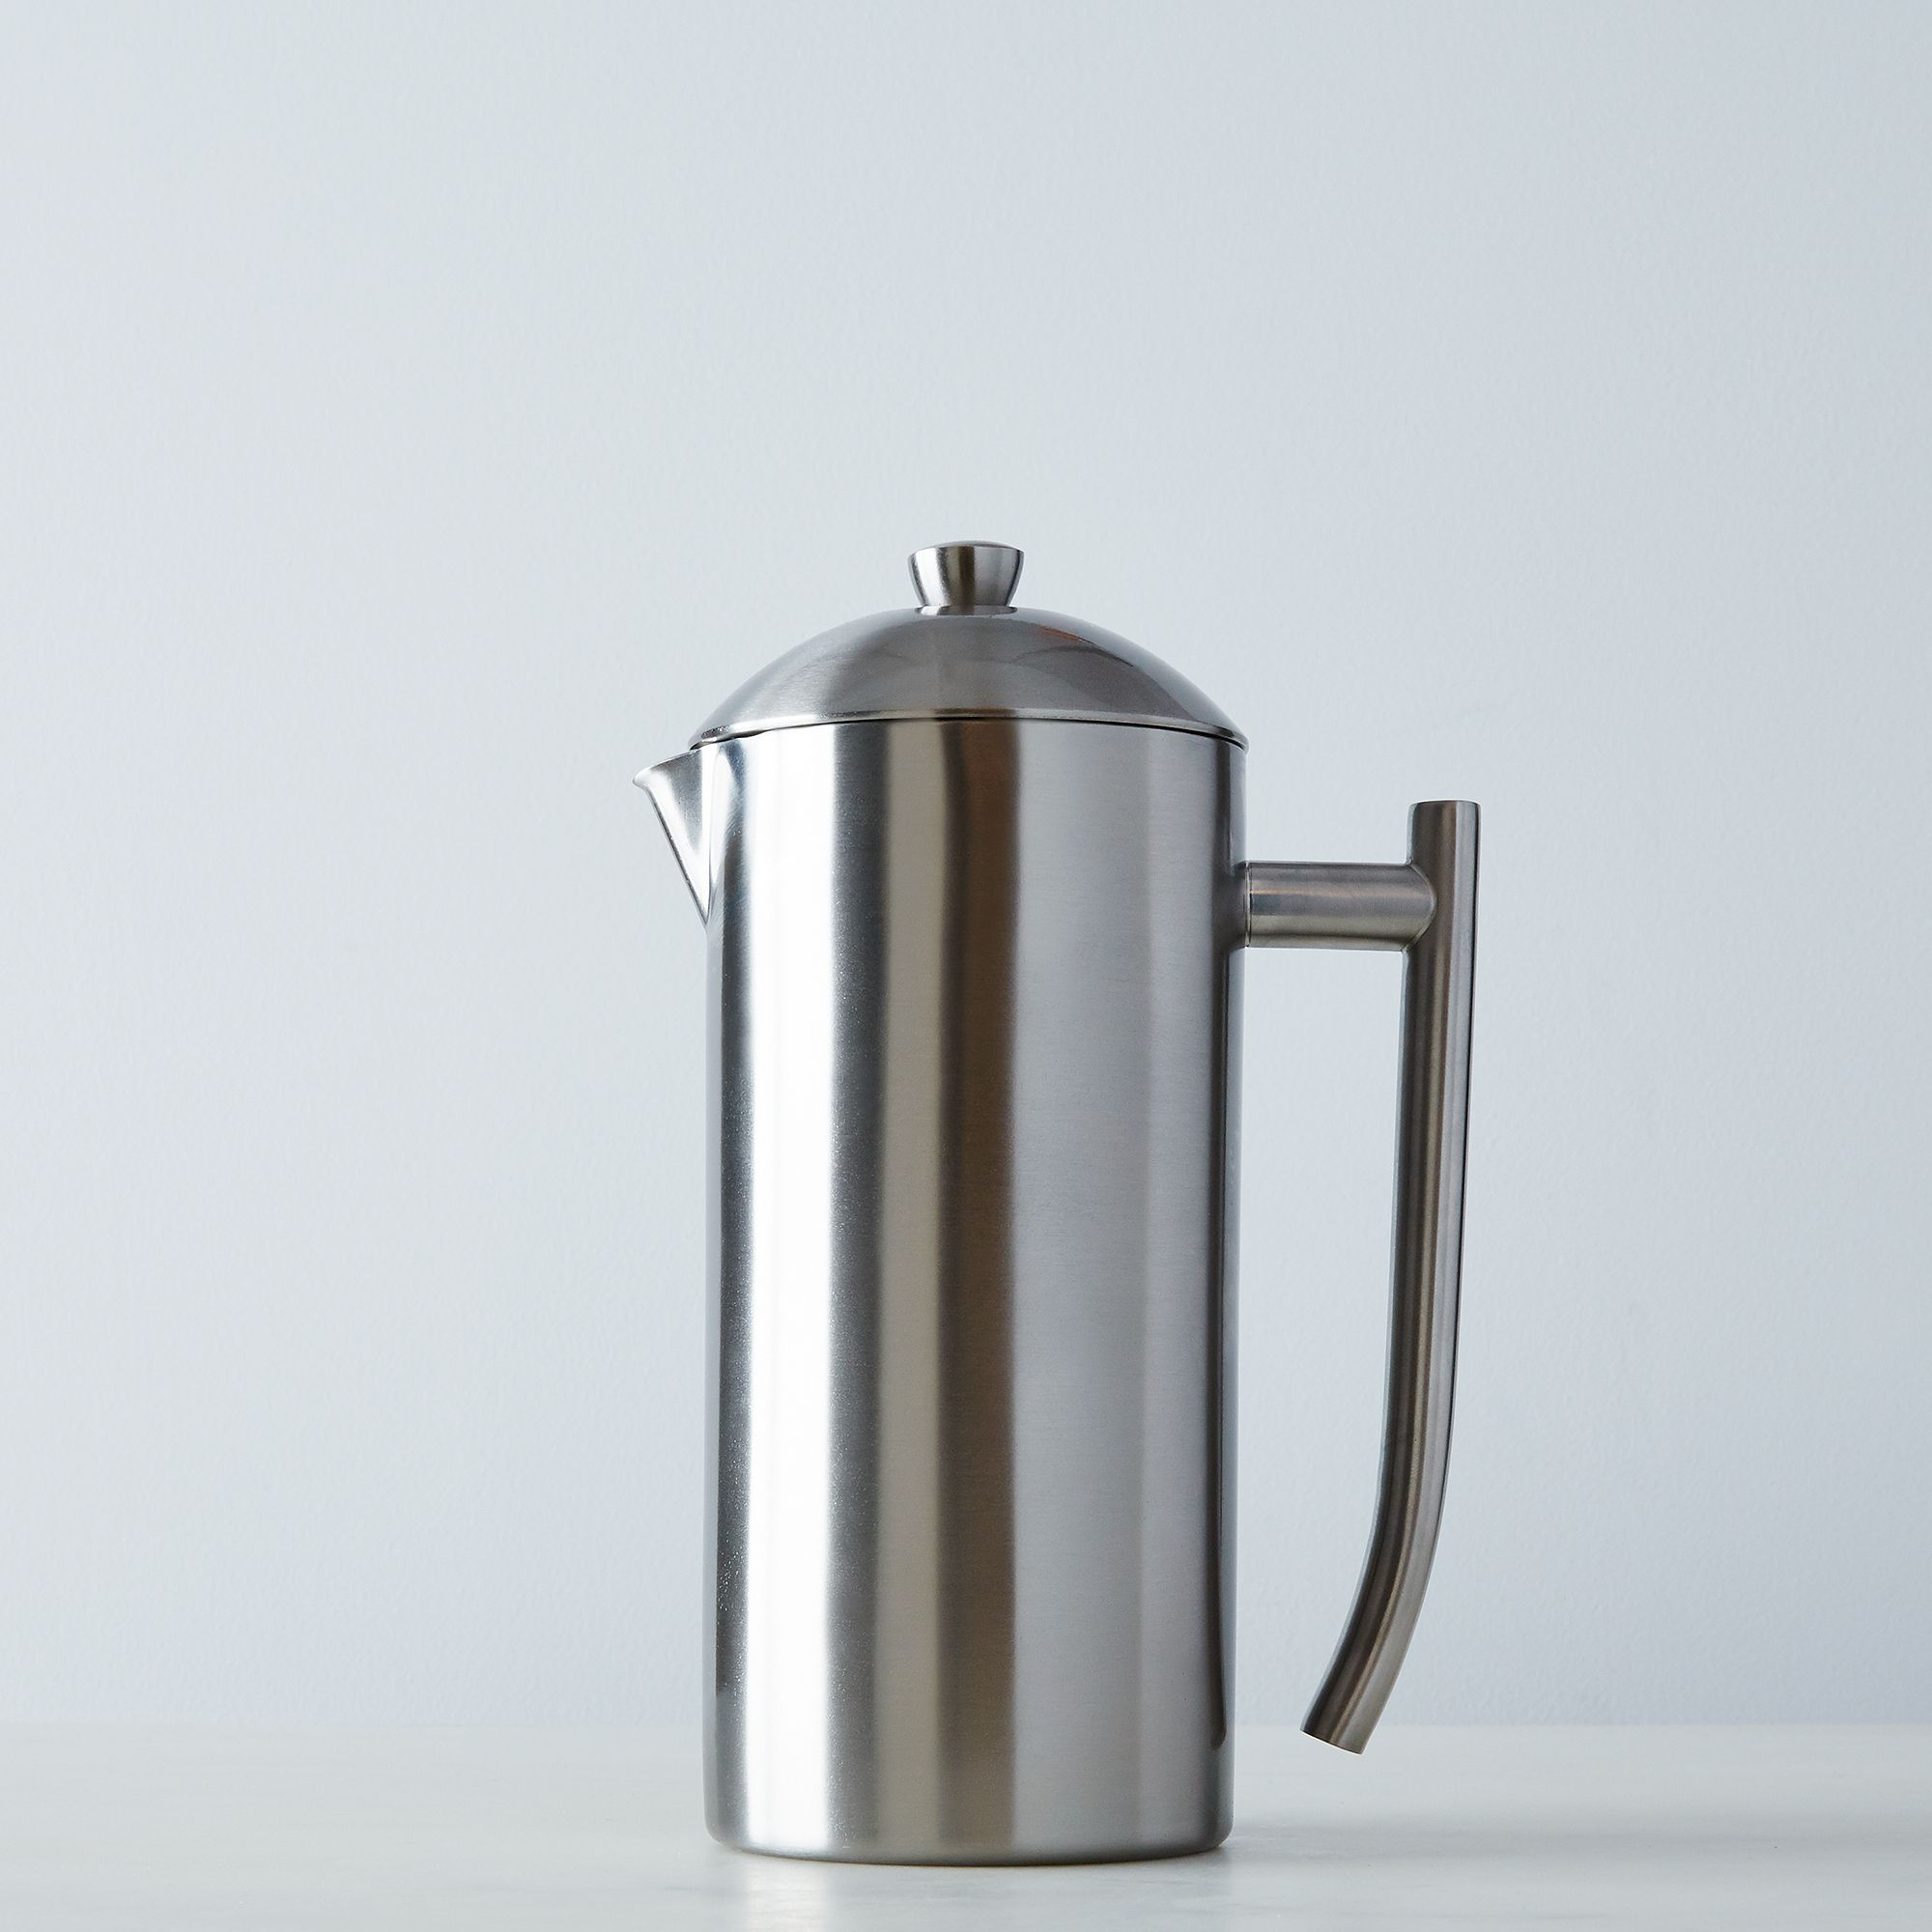 3afaf5b8 a0f8 11e5 a190 0ef7535729df  2015 0506 frieling coffee press 36oz silo james ransom 008